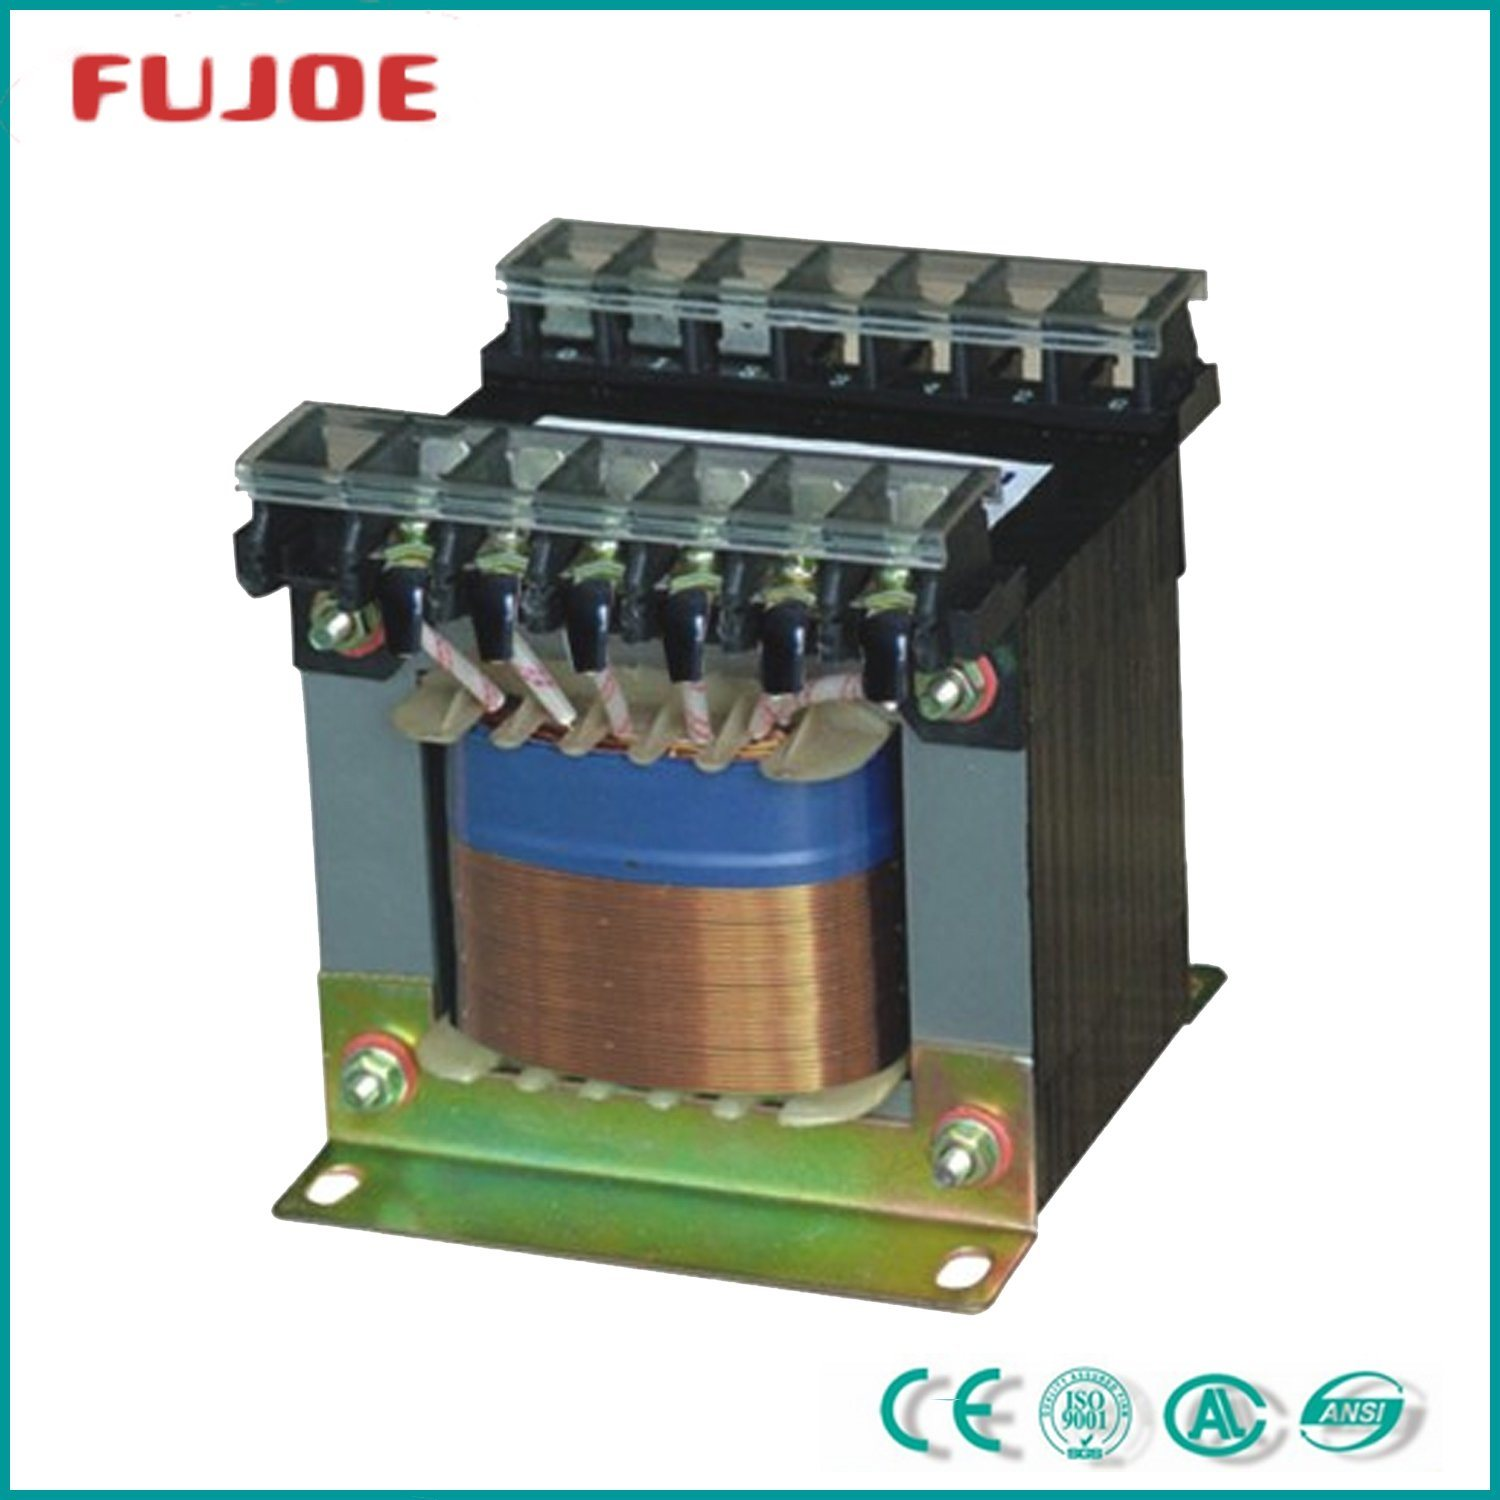 Jbk3-1000 Series Machine Tools Control Panel Power Transformer